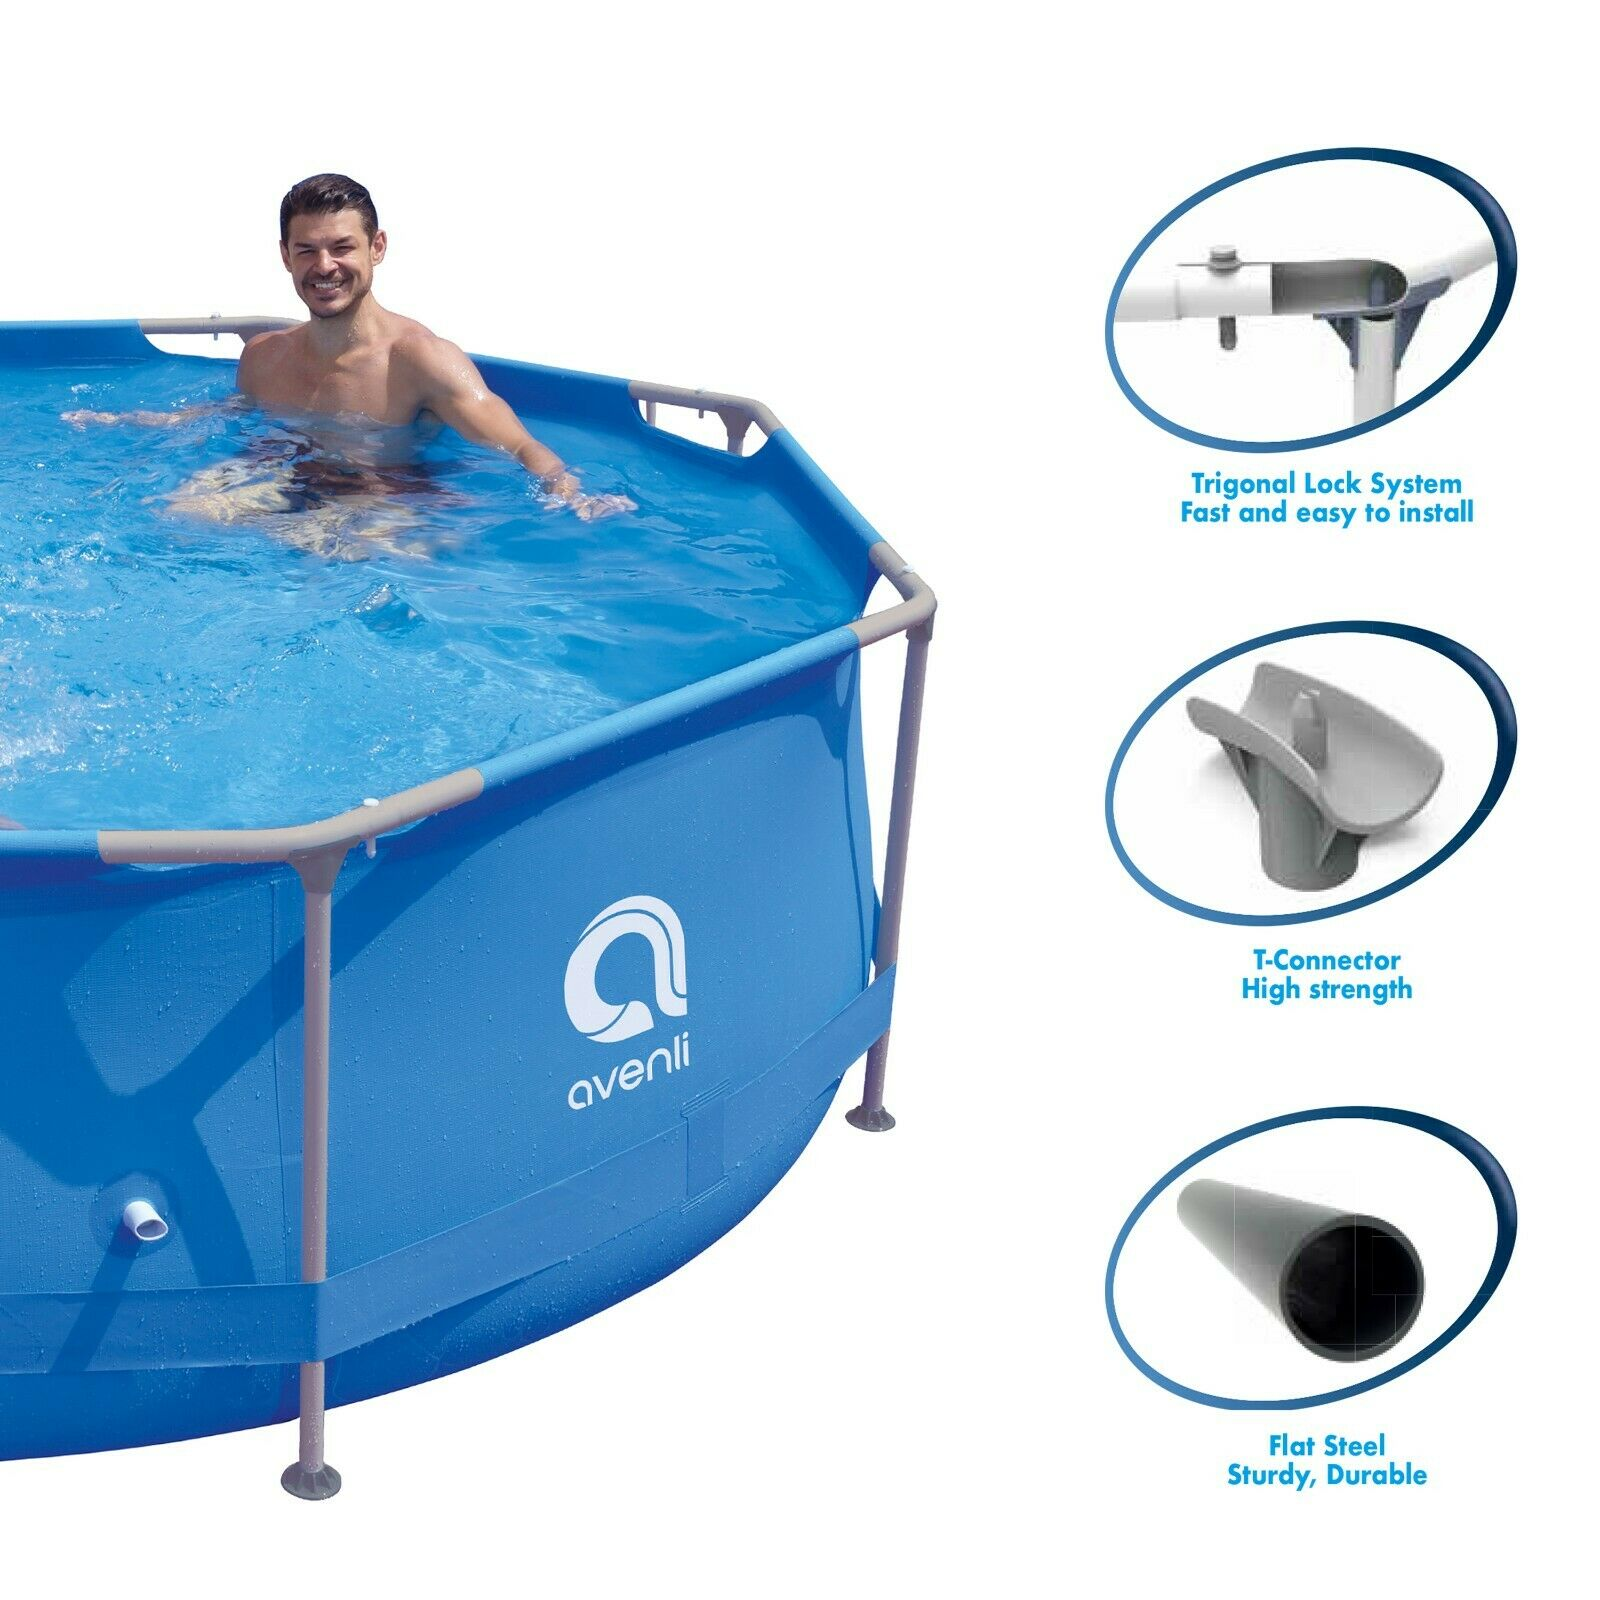 Round Super Steel Family Pool / Heavy Duty / Easy to Install / Anti-Corrosion